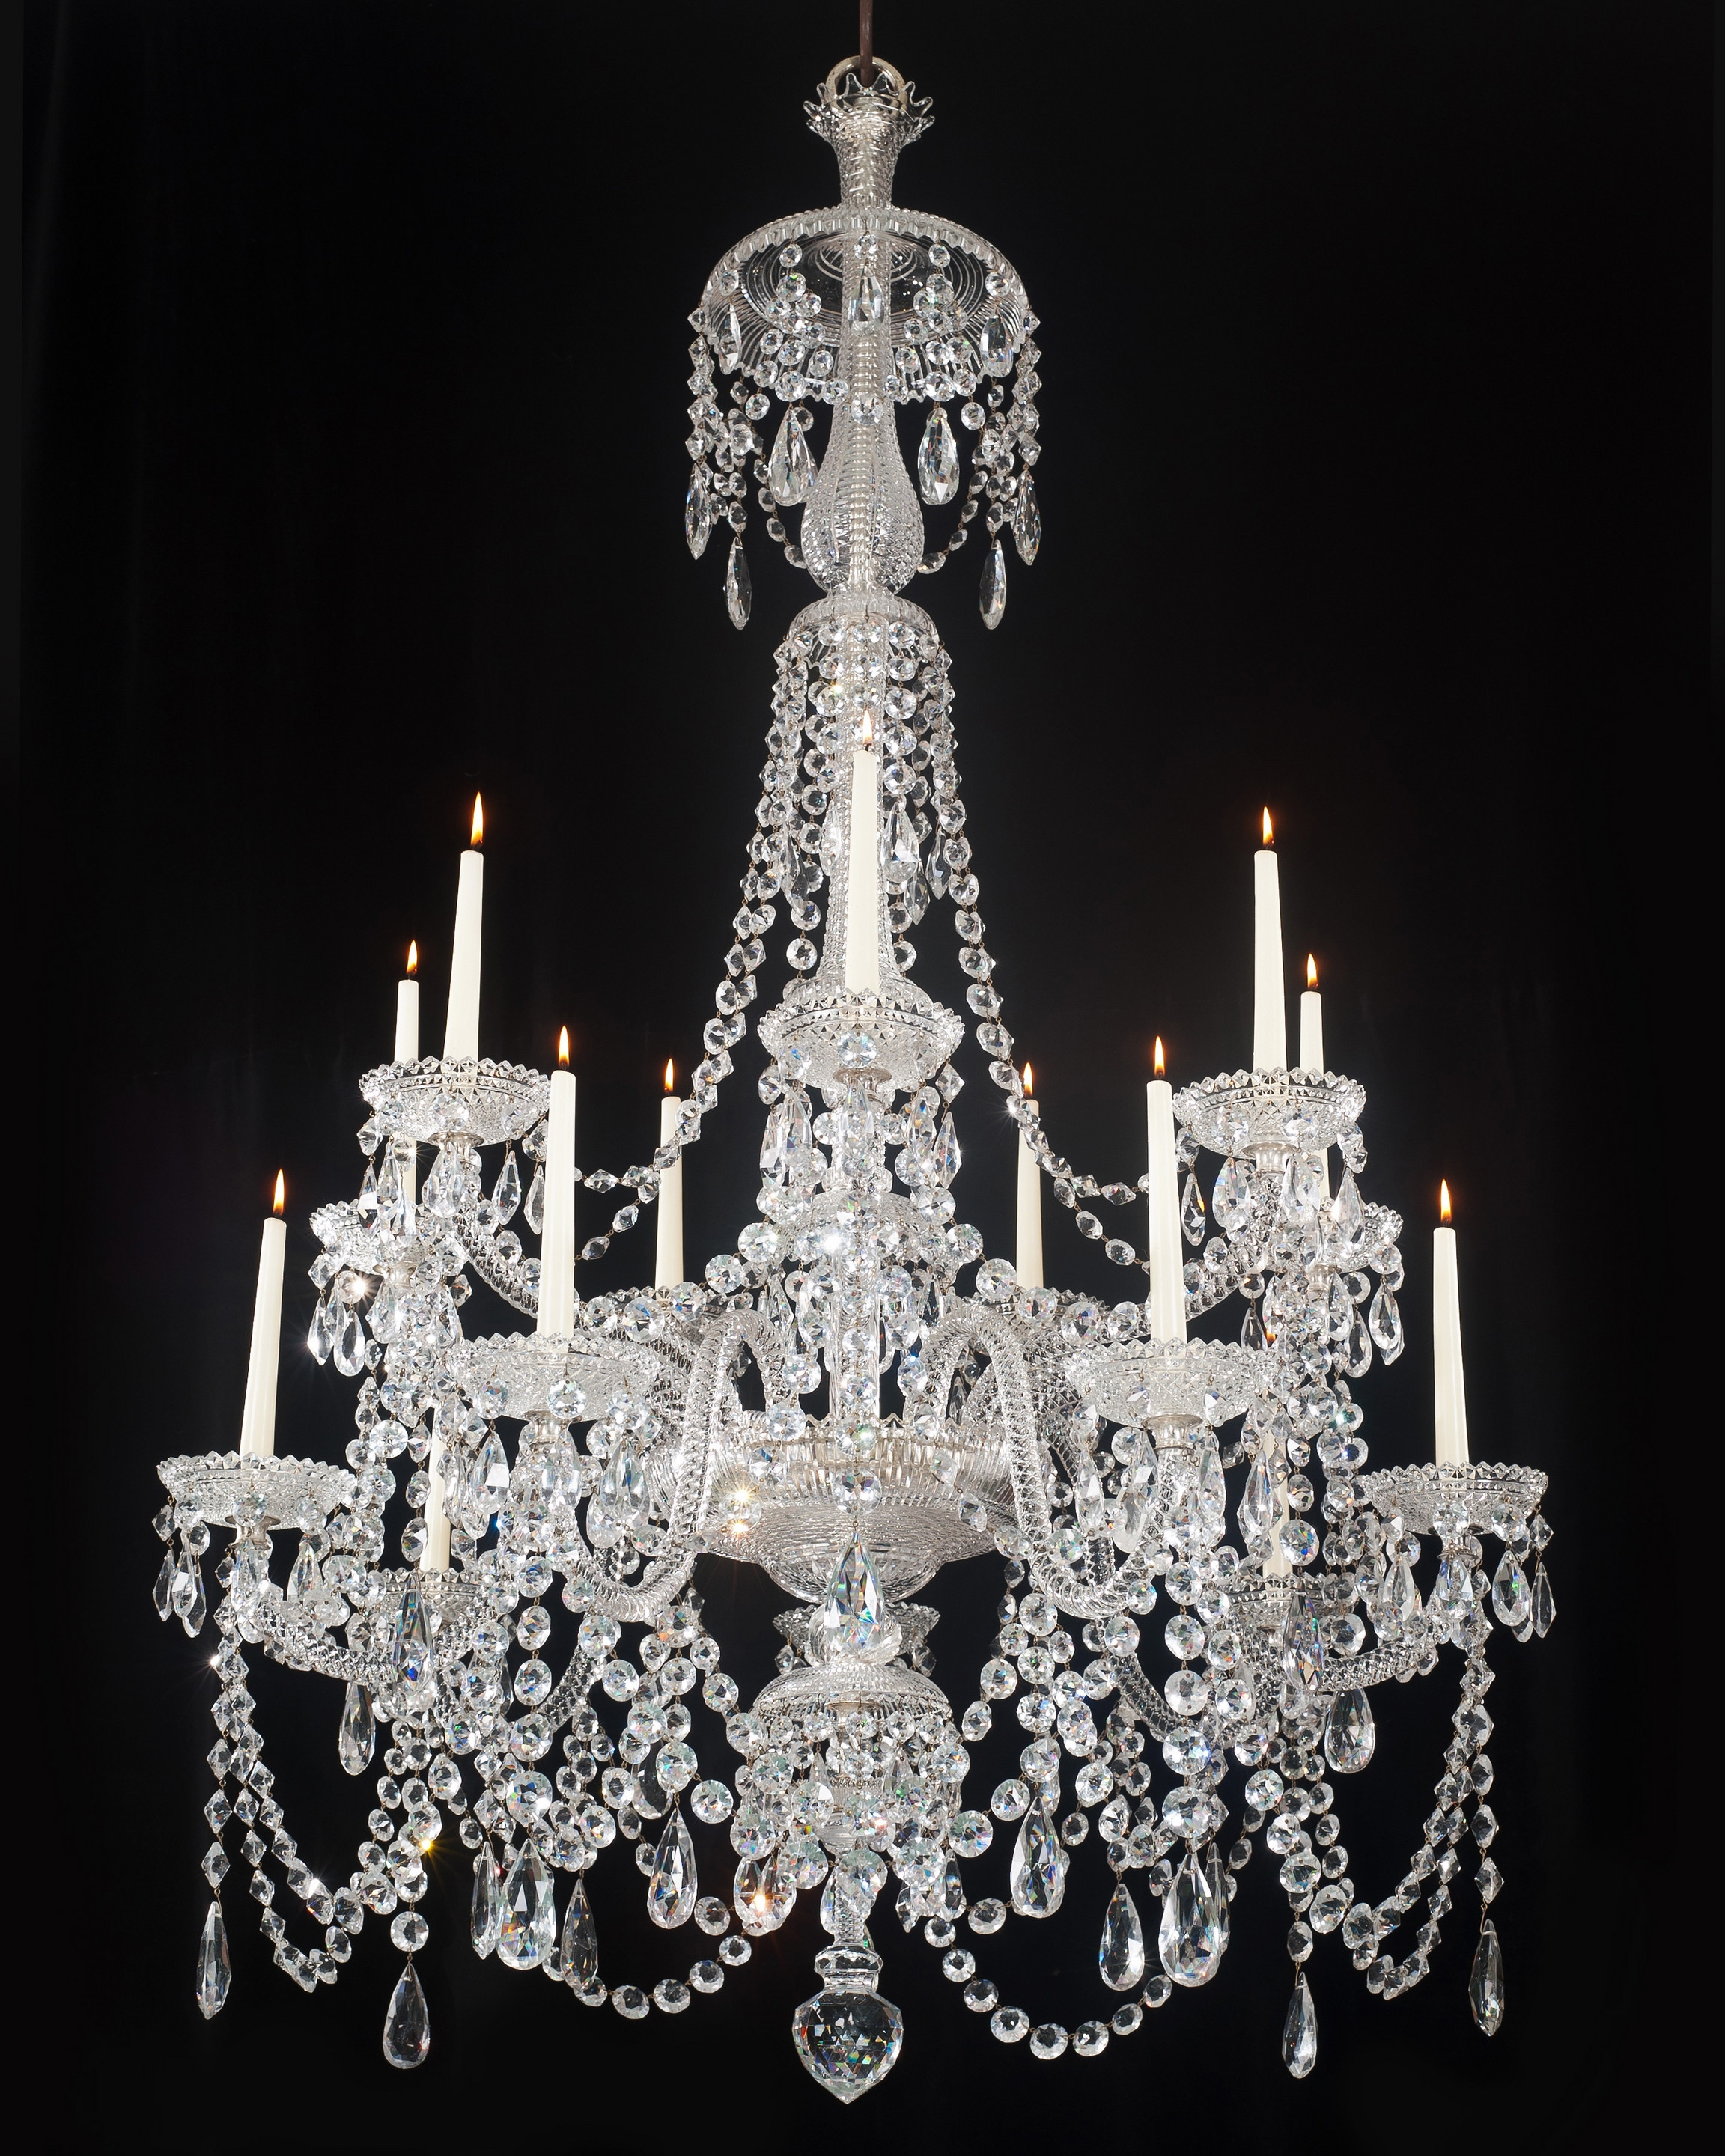 Chandeliers London The Uks Premier Antiques Portal Online With Antique Chandeliers (Image 8 of 15)